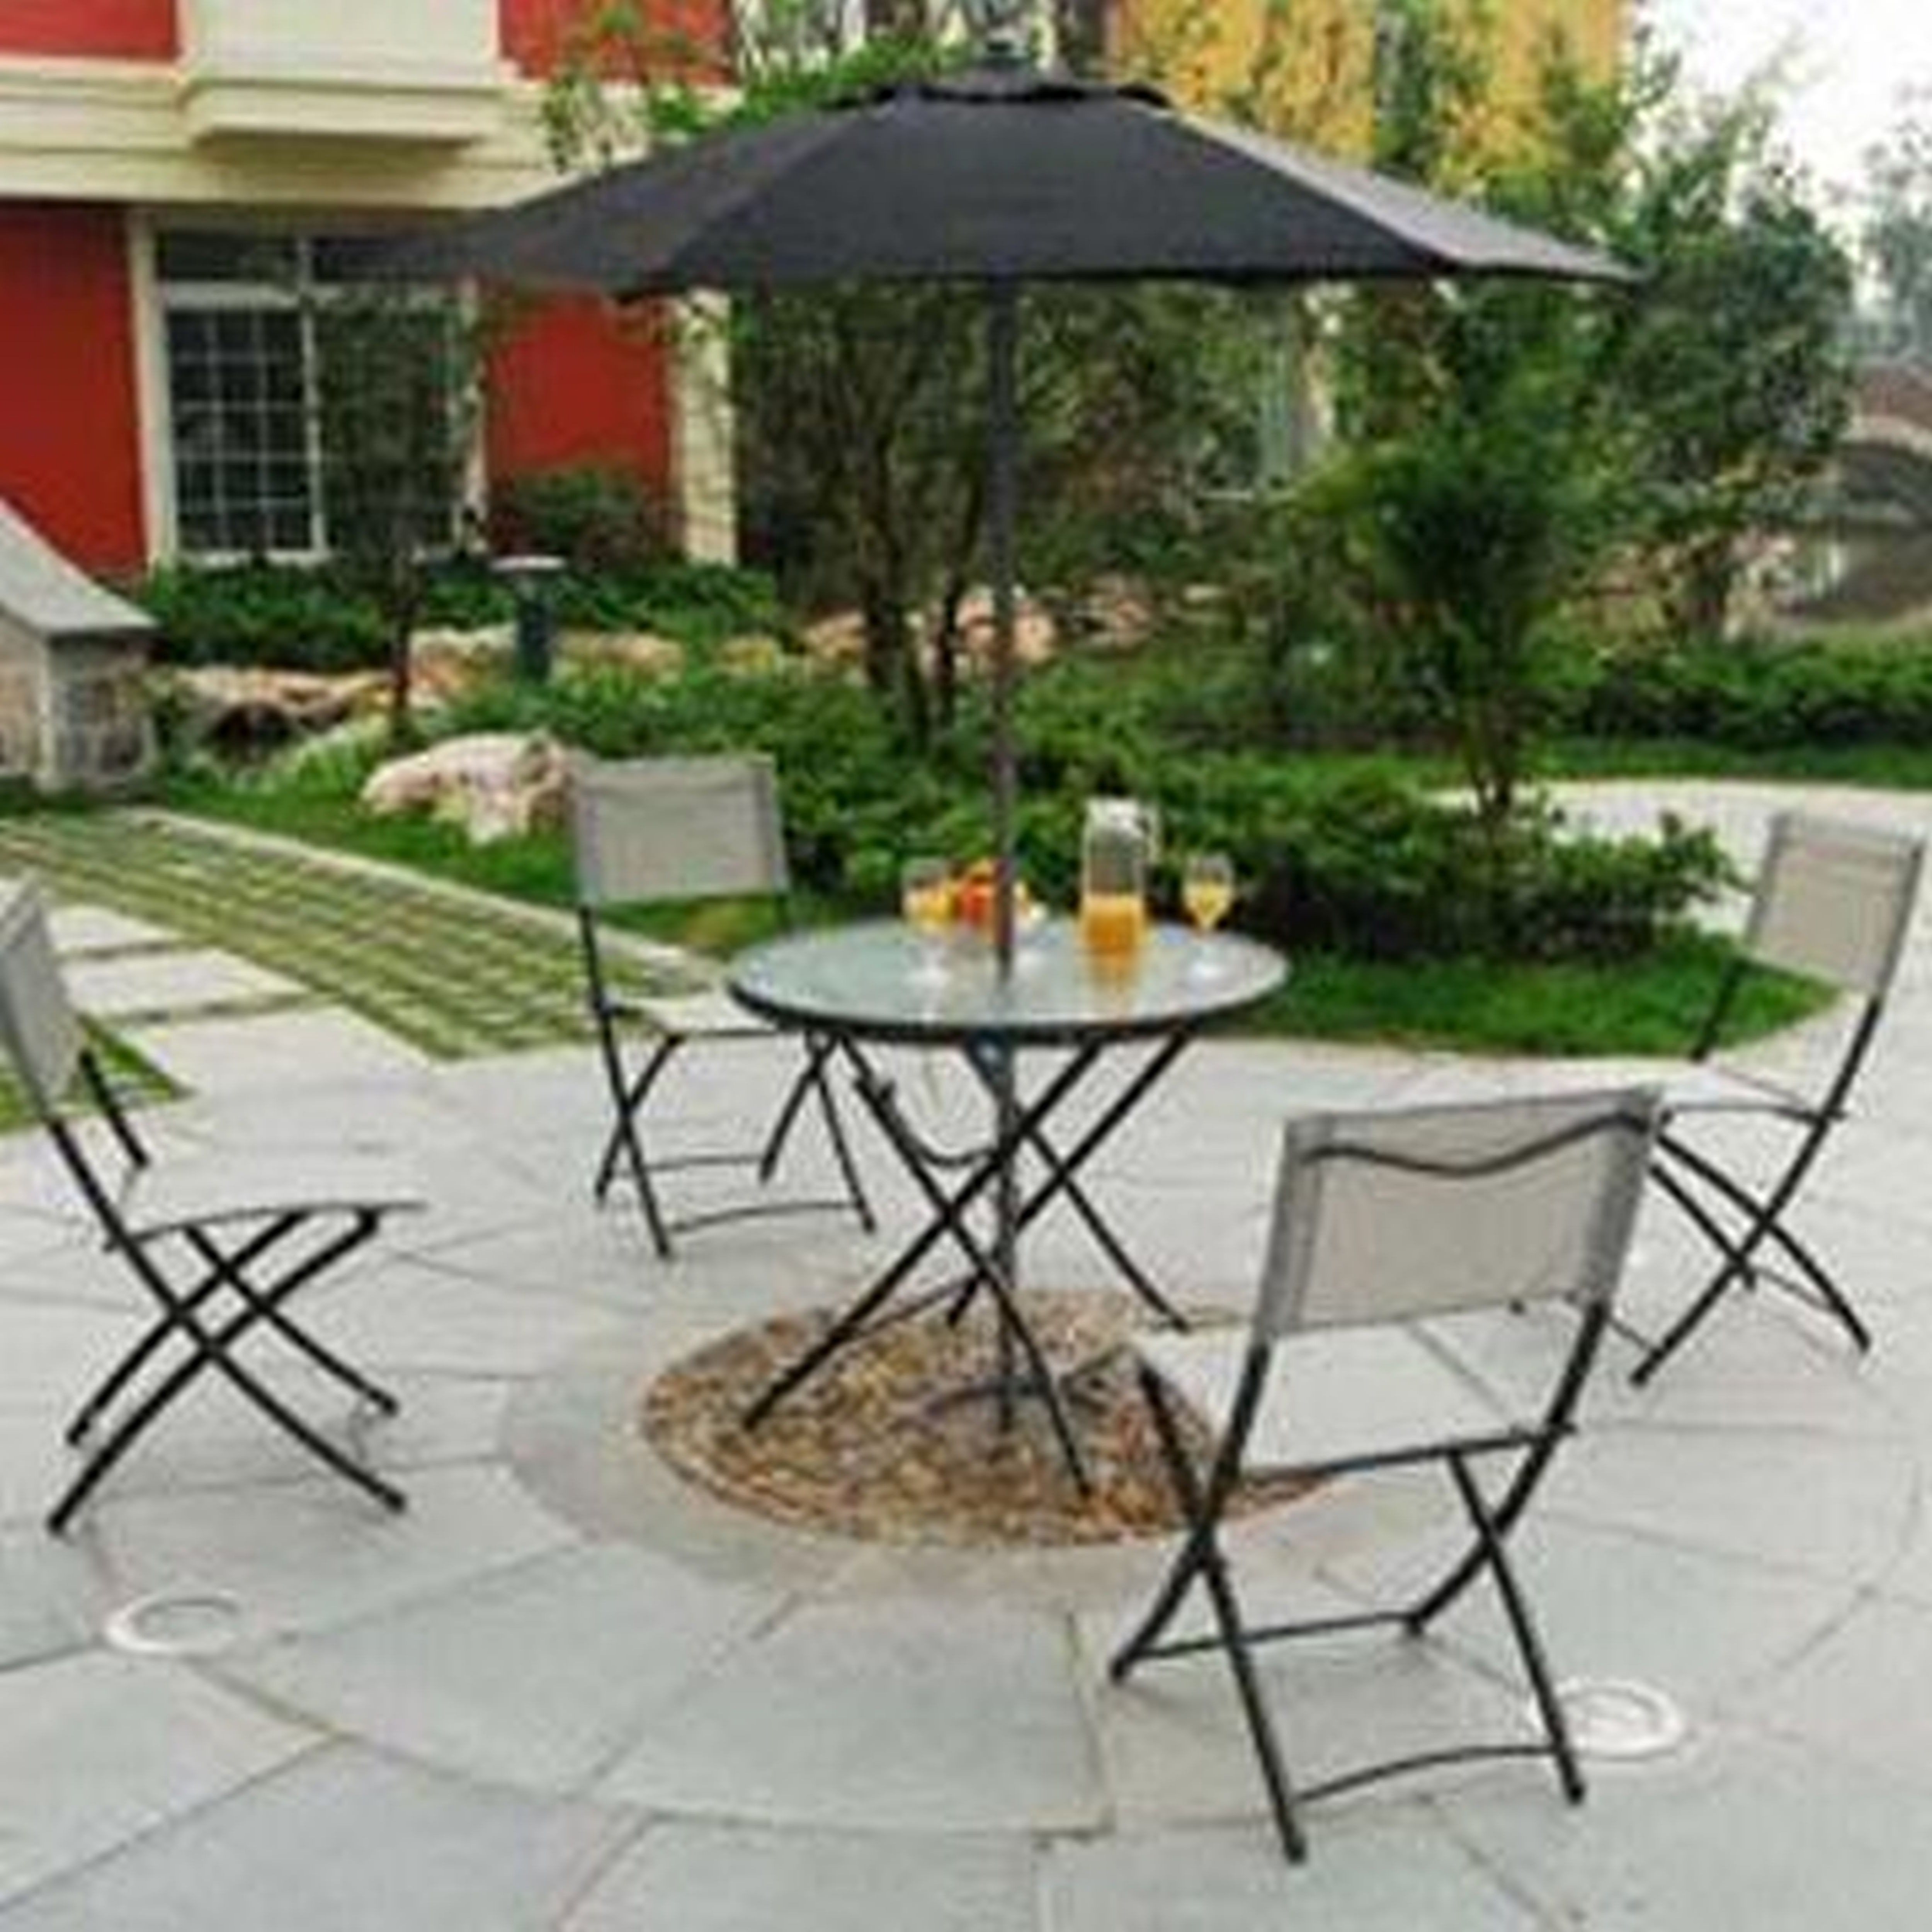 Most Recently Released Umbrella For Patio Table New 30 The Best Patio Umbrellas Near Me Intended For Small Patio Umbrellas (View 9 of 20)